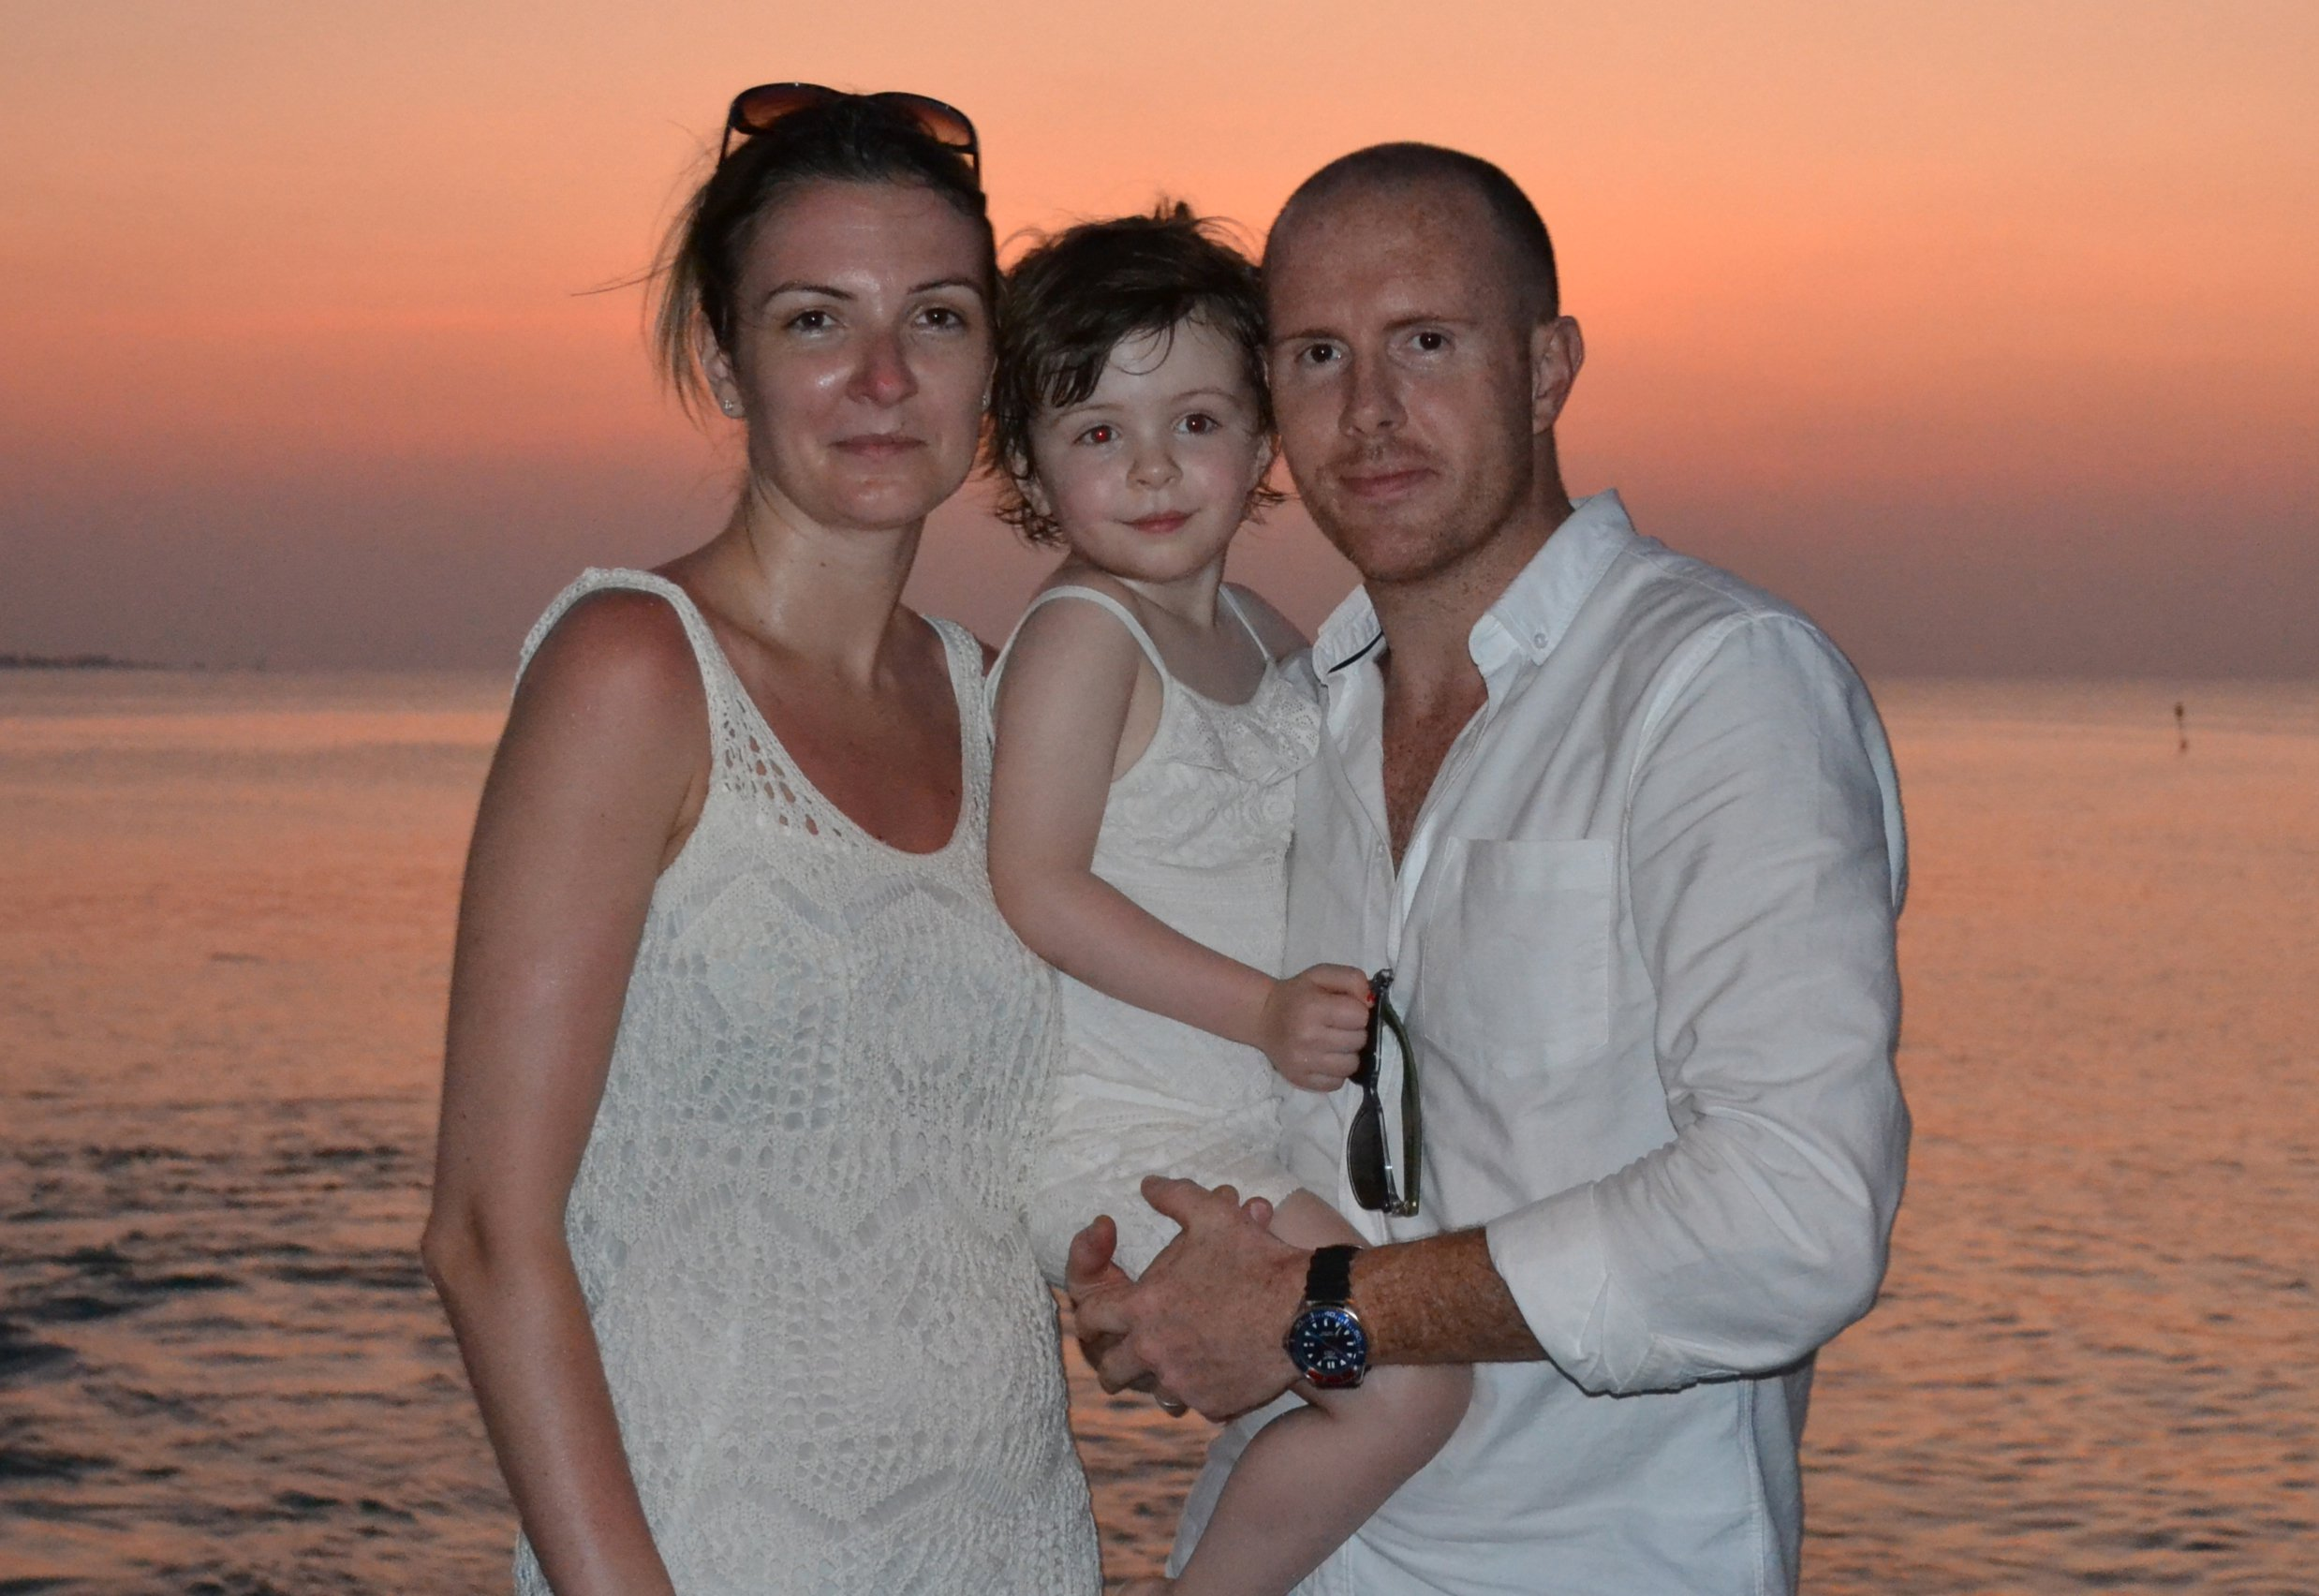 Phil Akers from Shropshire who is setting up a charity with his wife Helen called Ava's Angels after their 3 year old daughter Ava was struck down with a rare form of Glandular fever in the Maldives and passed away 2 months later. Collect pic of the family on holiday in the Maldives.